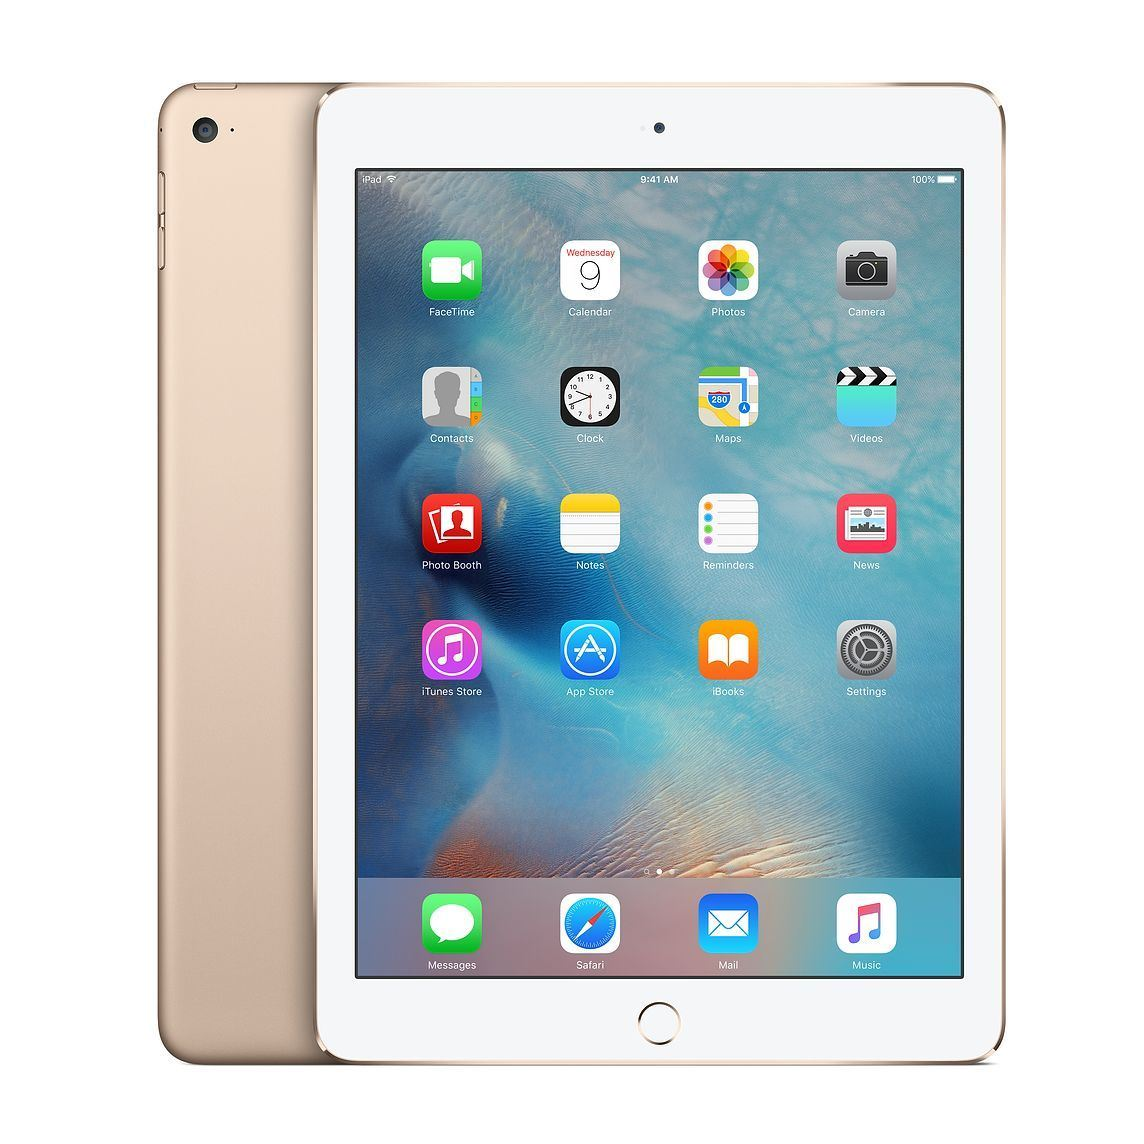 Apple iPad Air 2 32GB WiFi Gold Refurbished Good